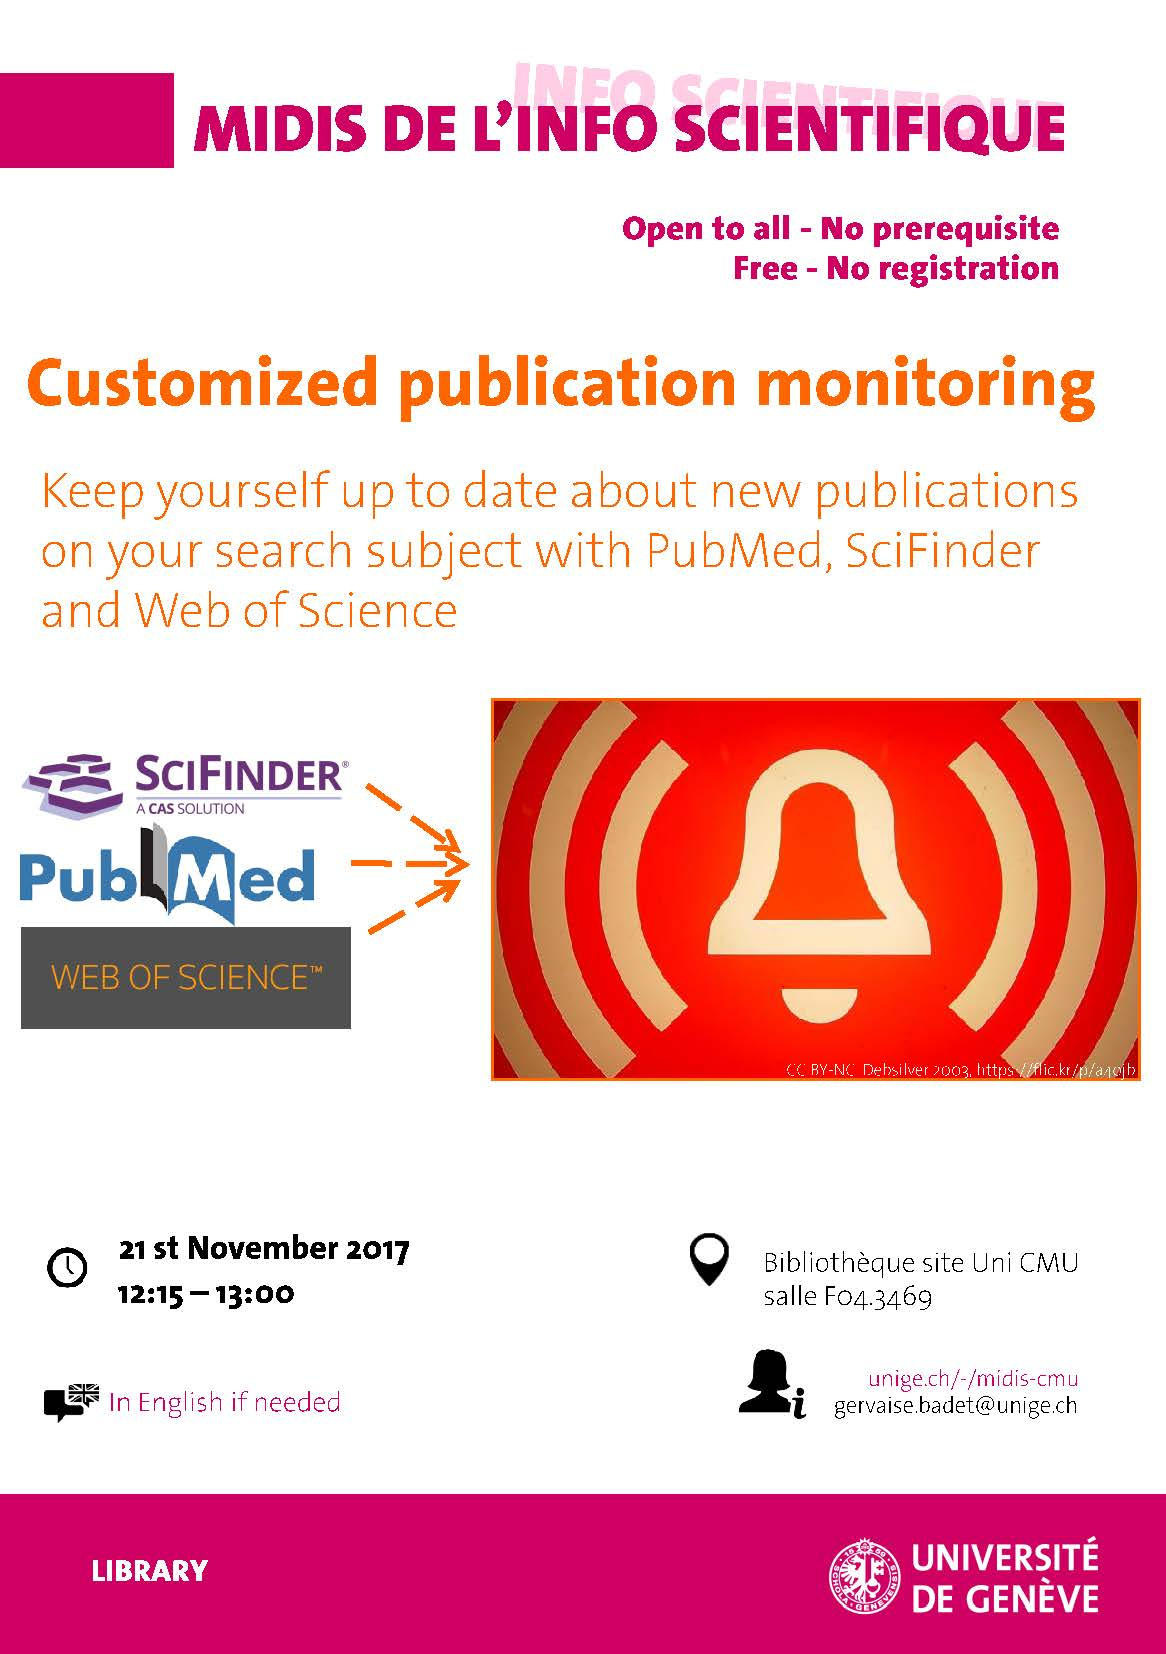 2017_midi_customized_publ_monitoring_flyer_en.jpg